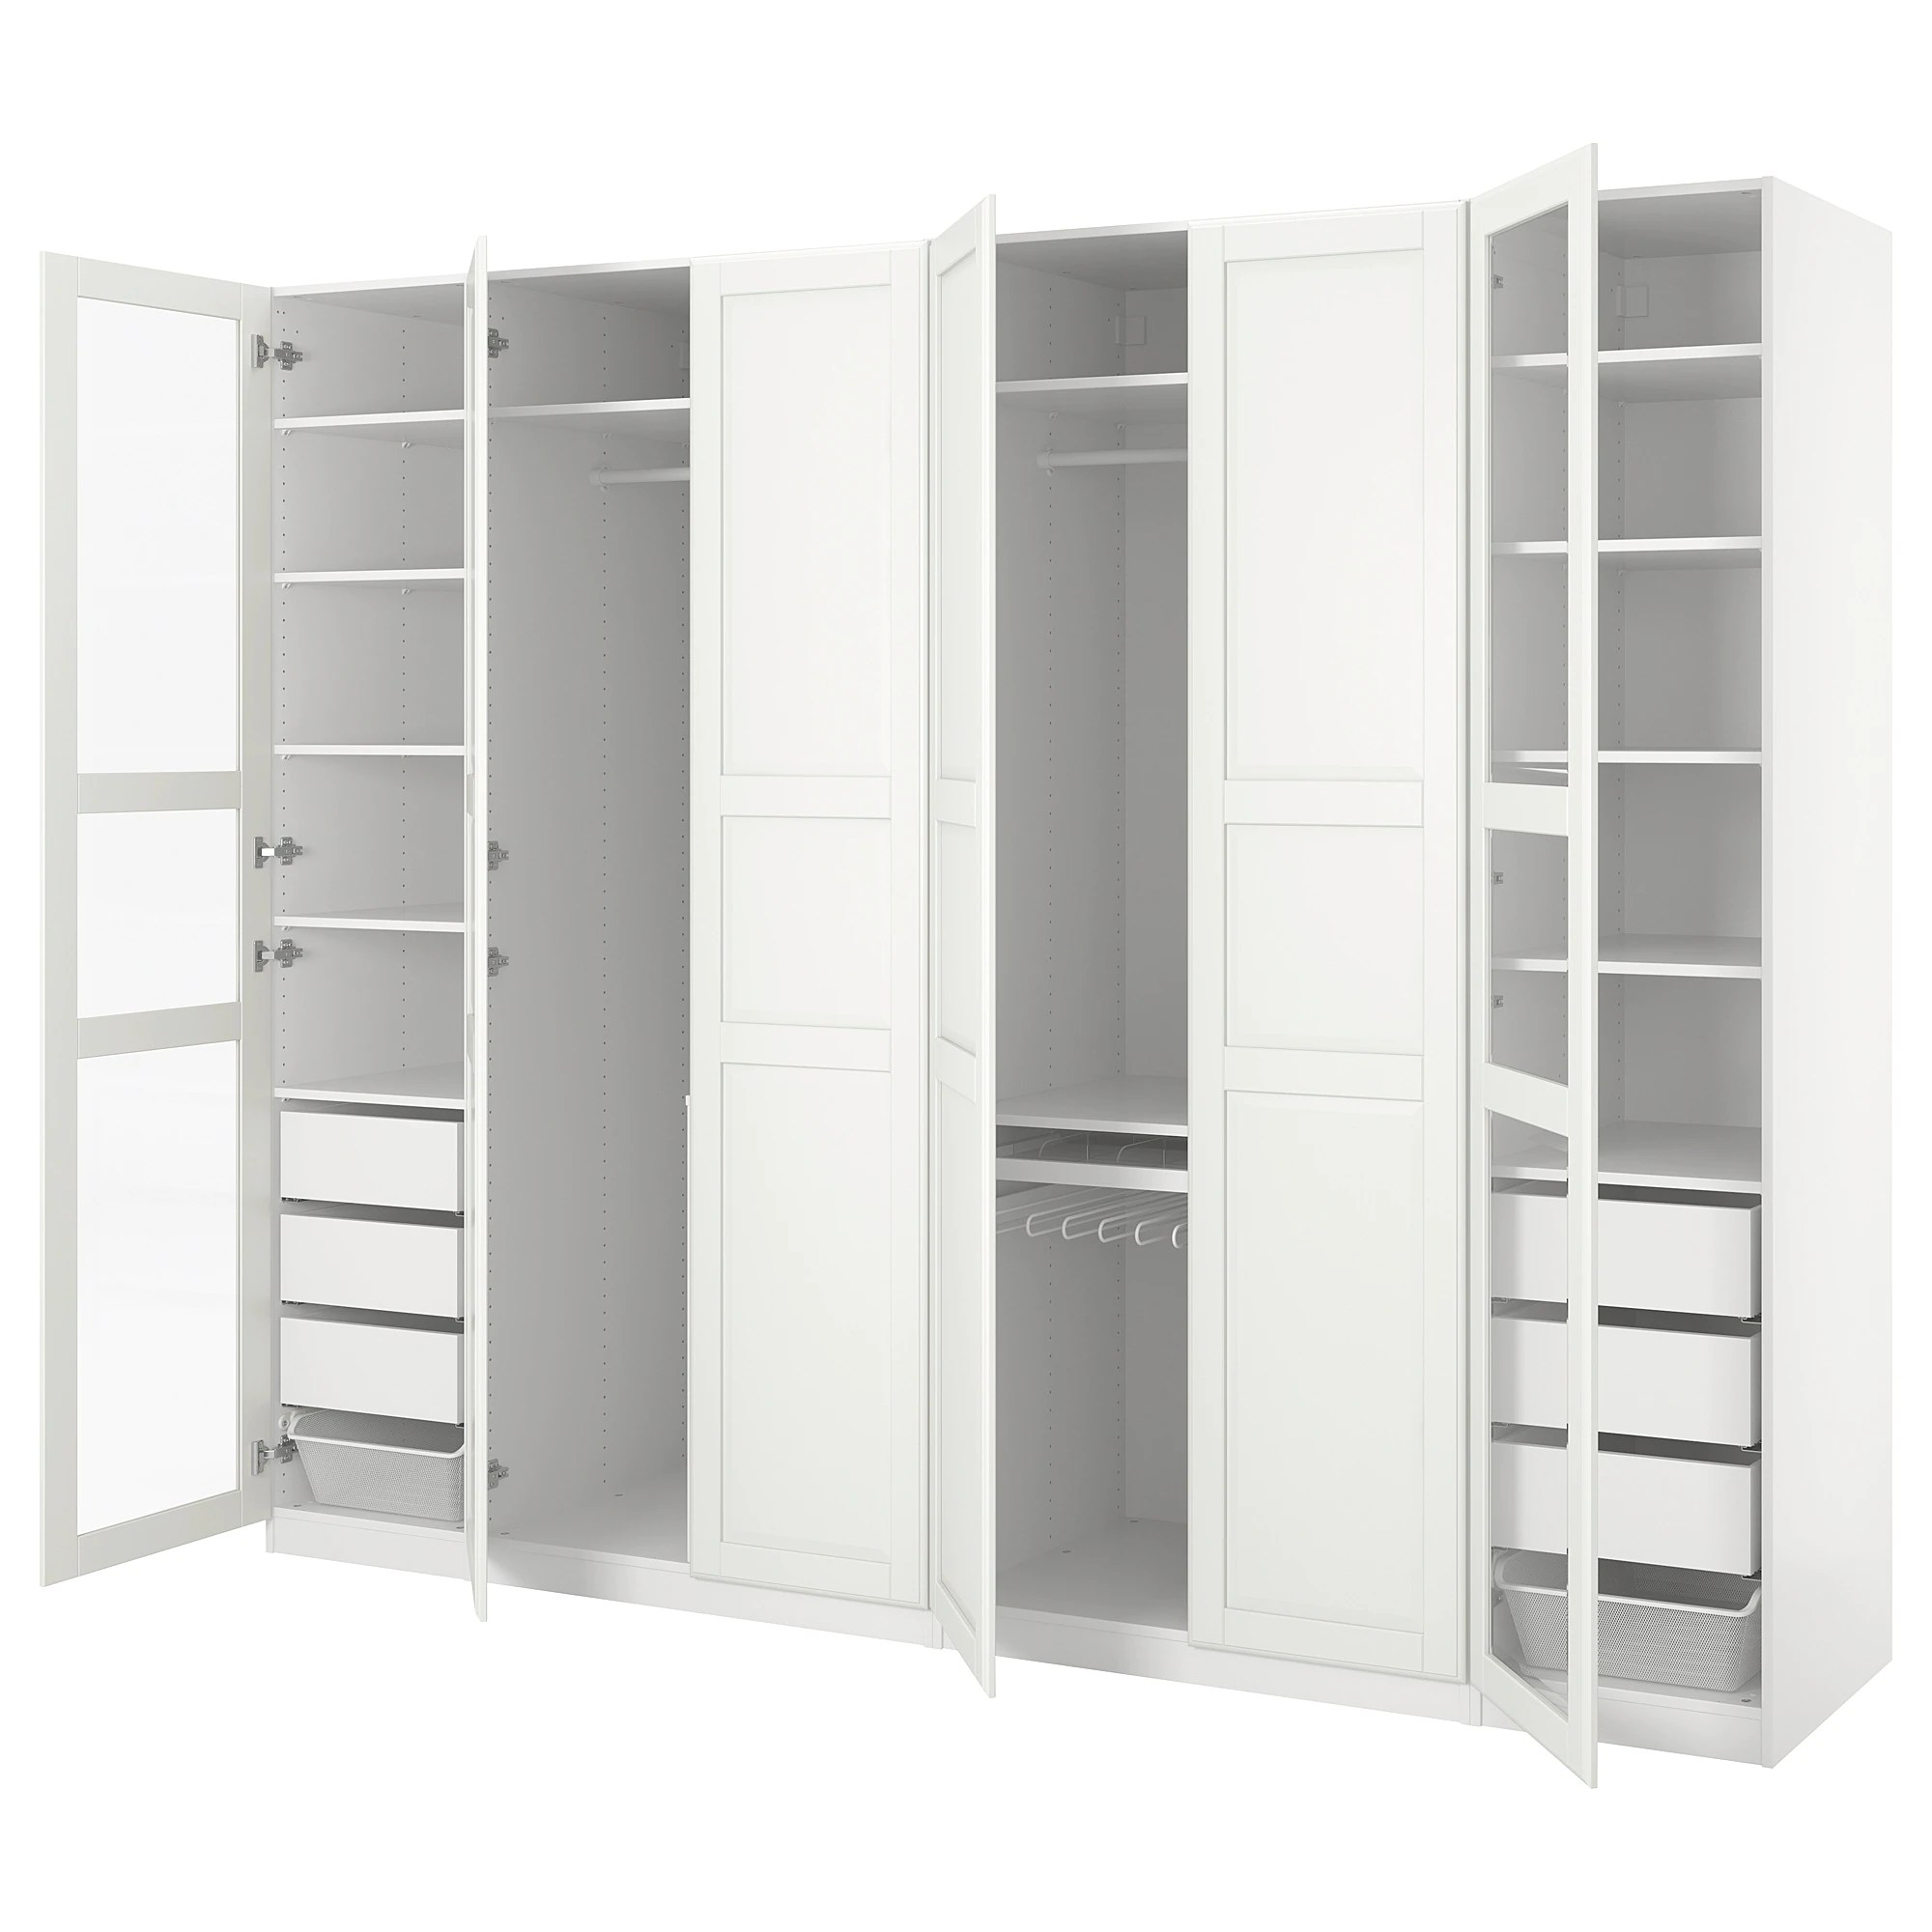 Ikea Pax Click And Collect Pax Wardrobe White Tyssedal Tyssedal Glass